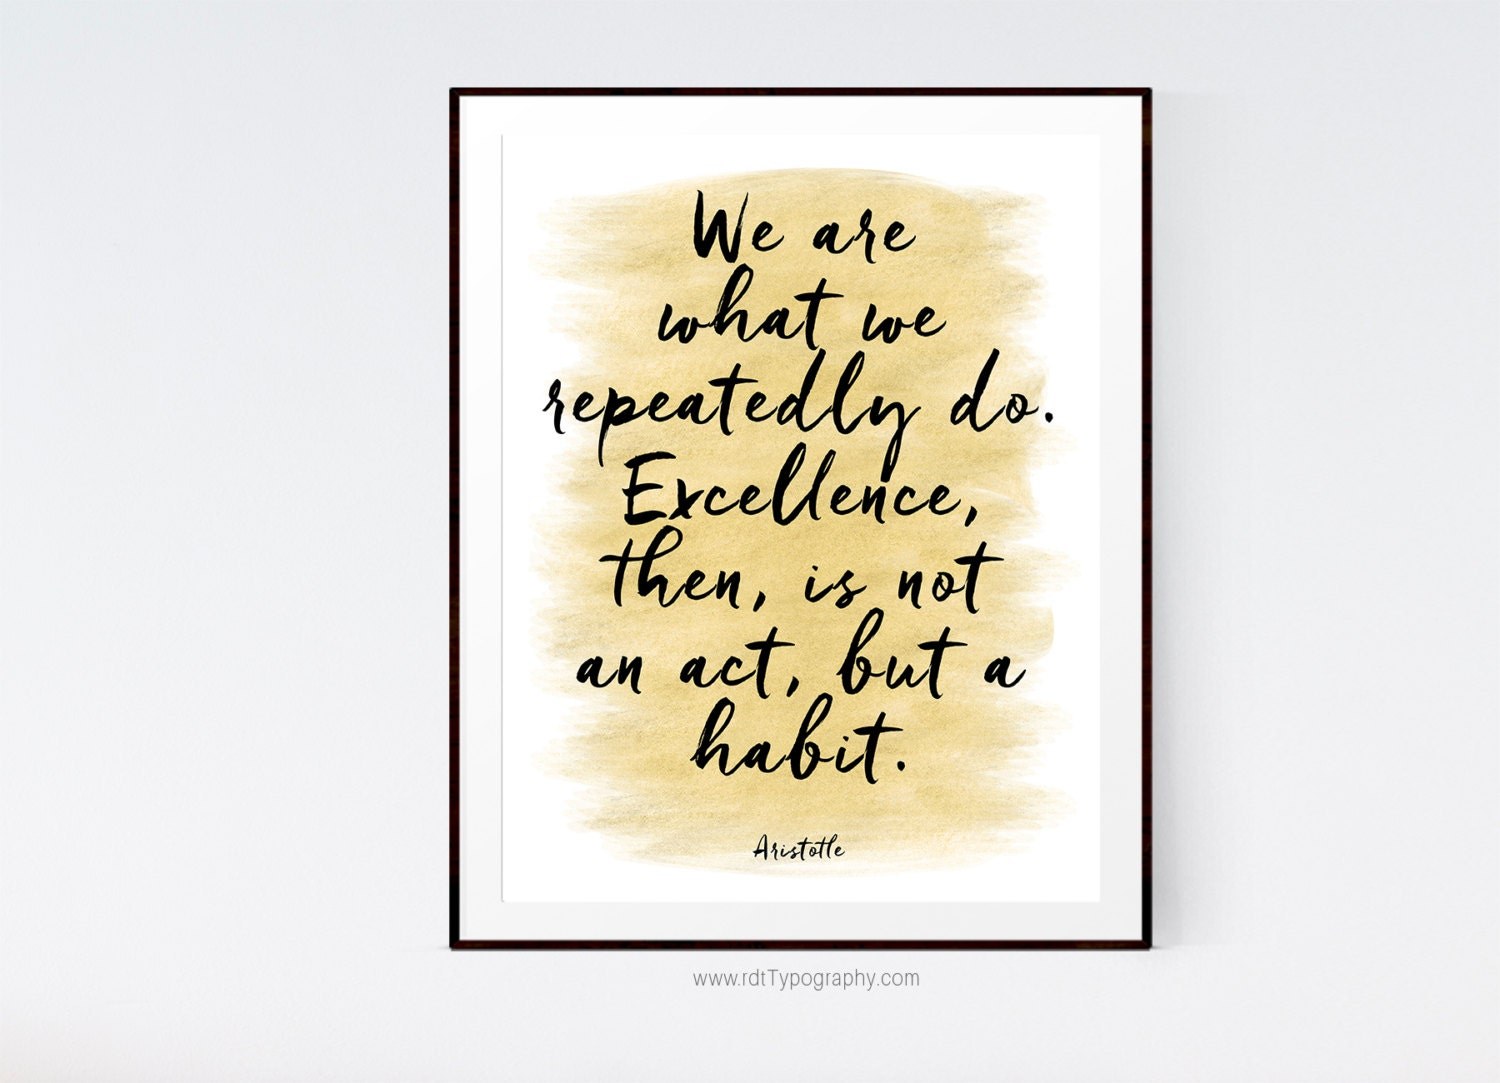 Inspirational Quotes Aristotle By Ibbds: Aristotle Wall Art Inspirational Quote Motivational Print